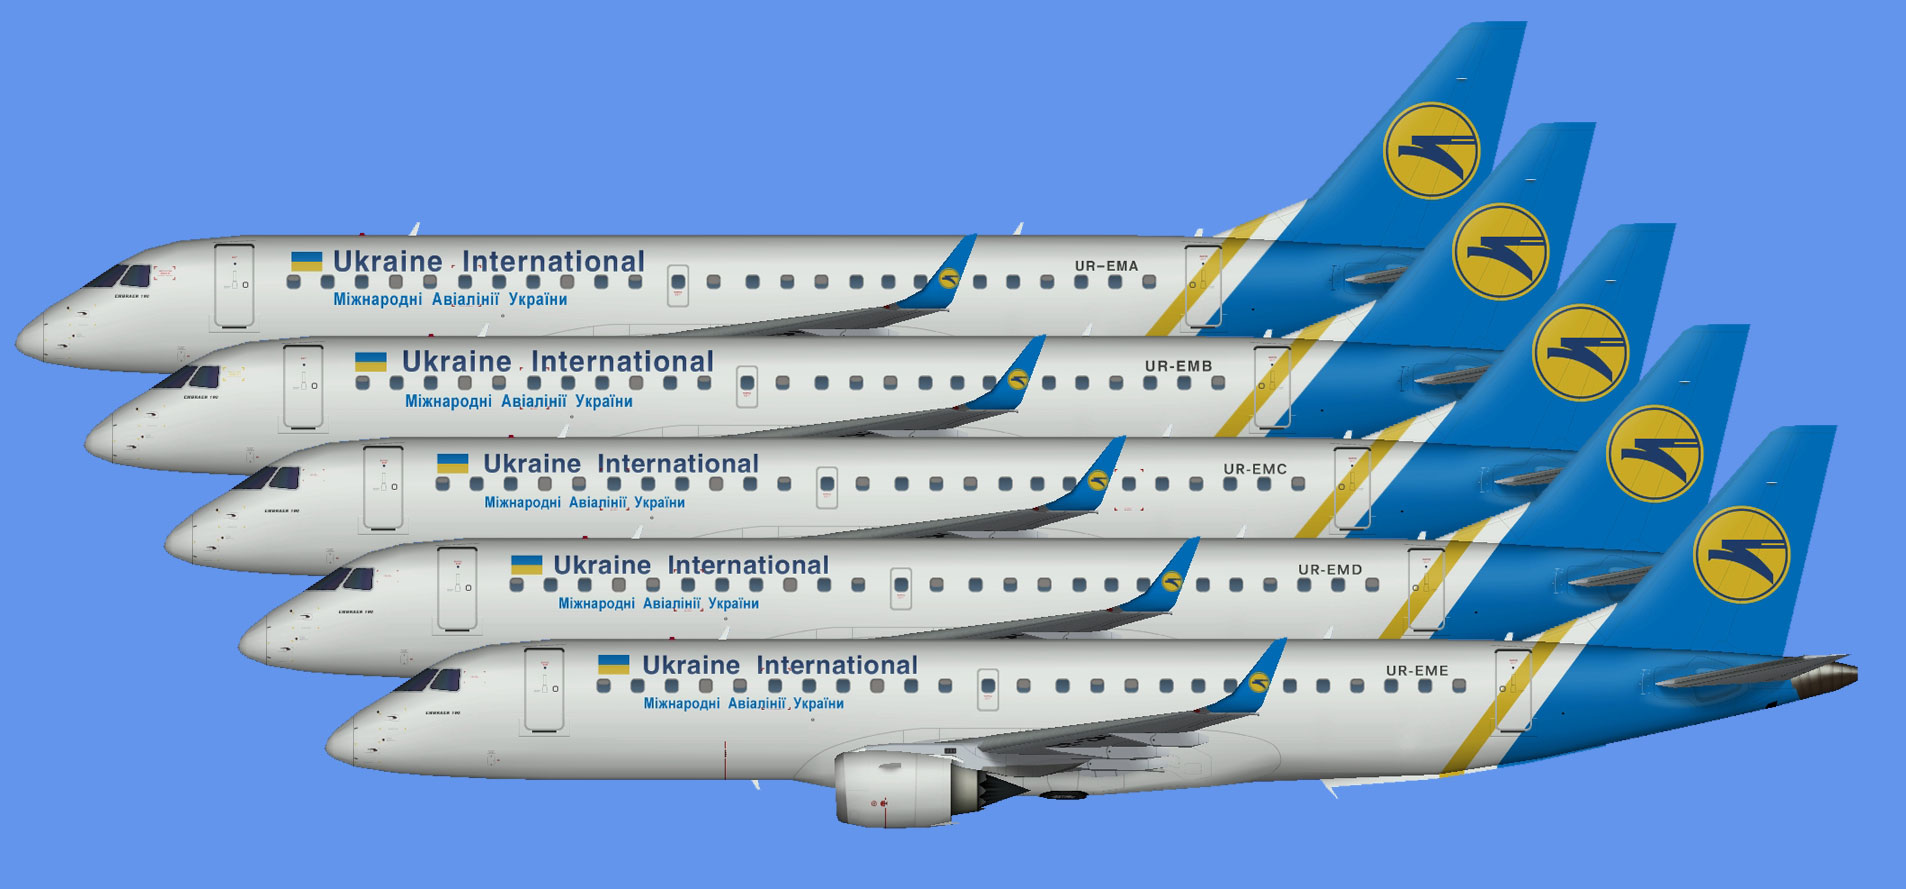 Ukraine International Embraer E-190